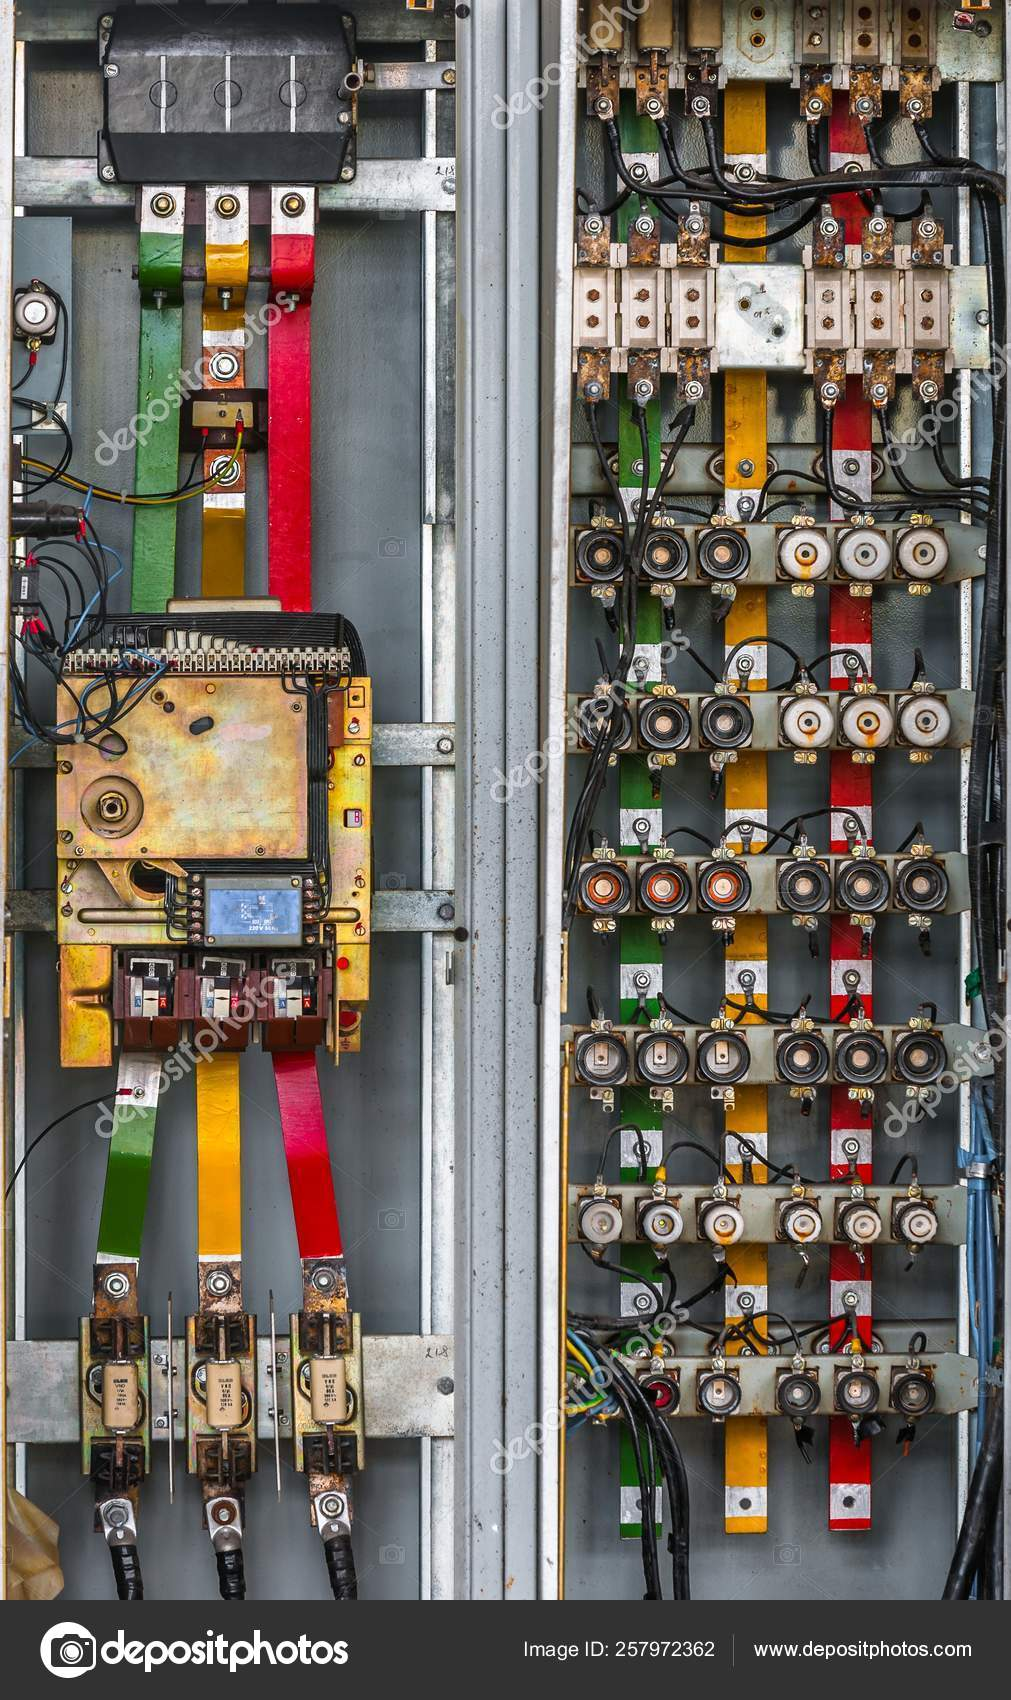 industrial fuse box wall closeup photo — stock photo © yayimages #257972362  depositphotos